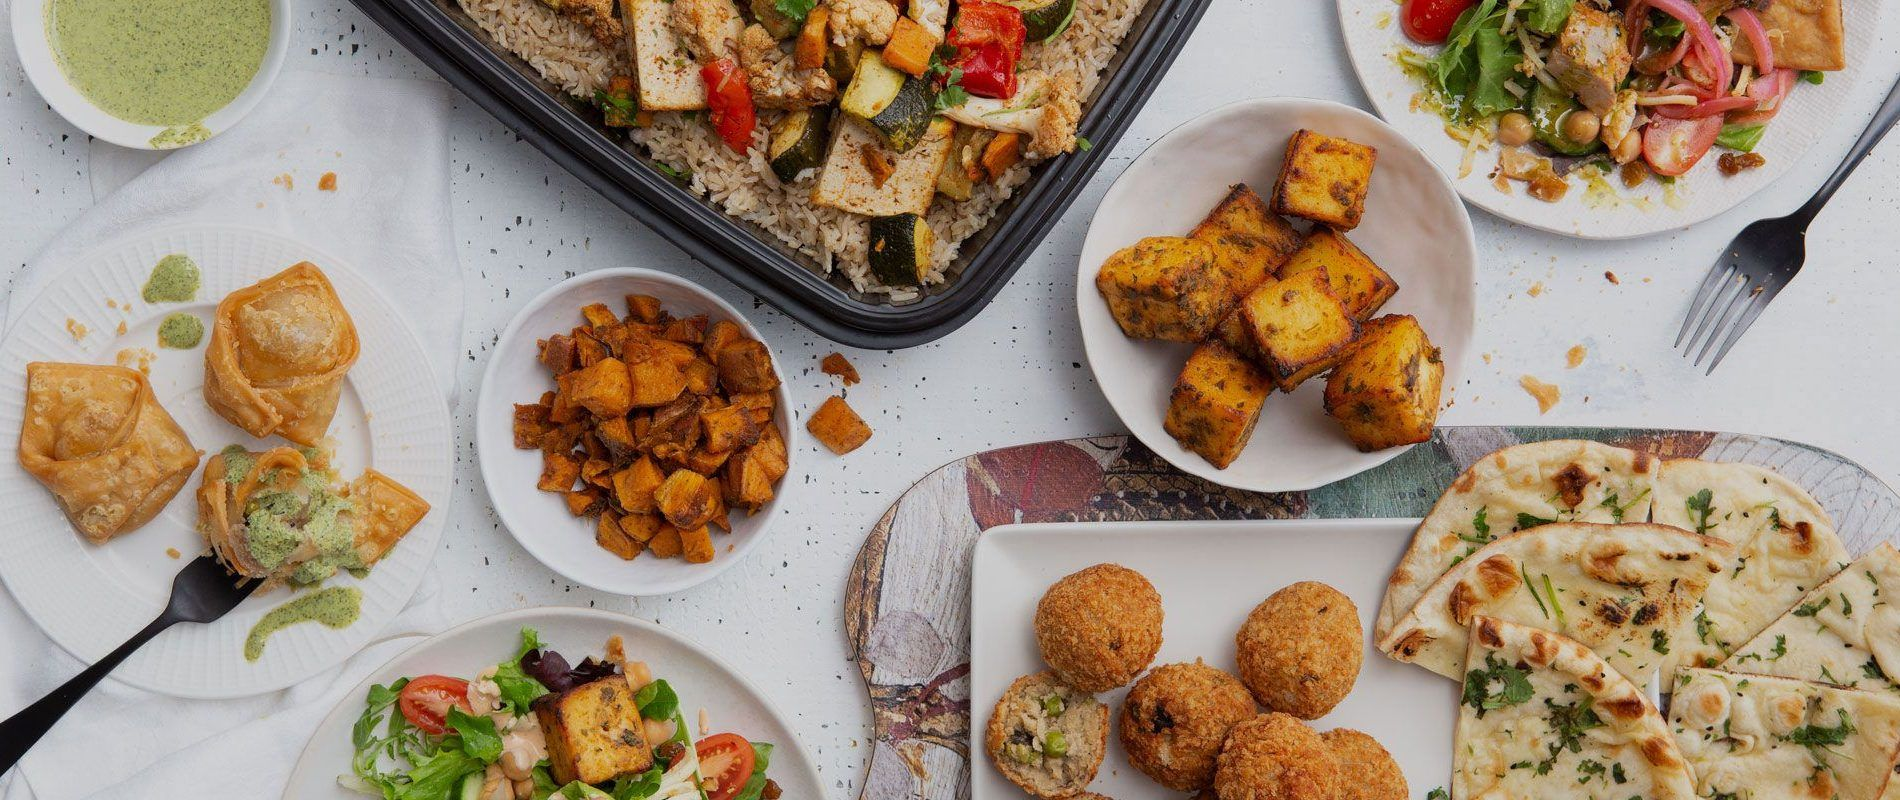 catering meal with samosas, paneer, veggie croquettes, naan and choolaah salad